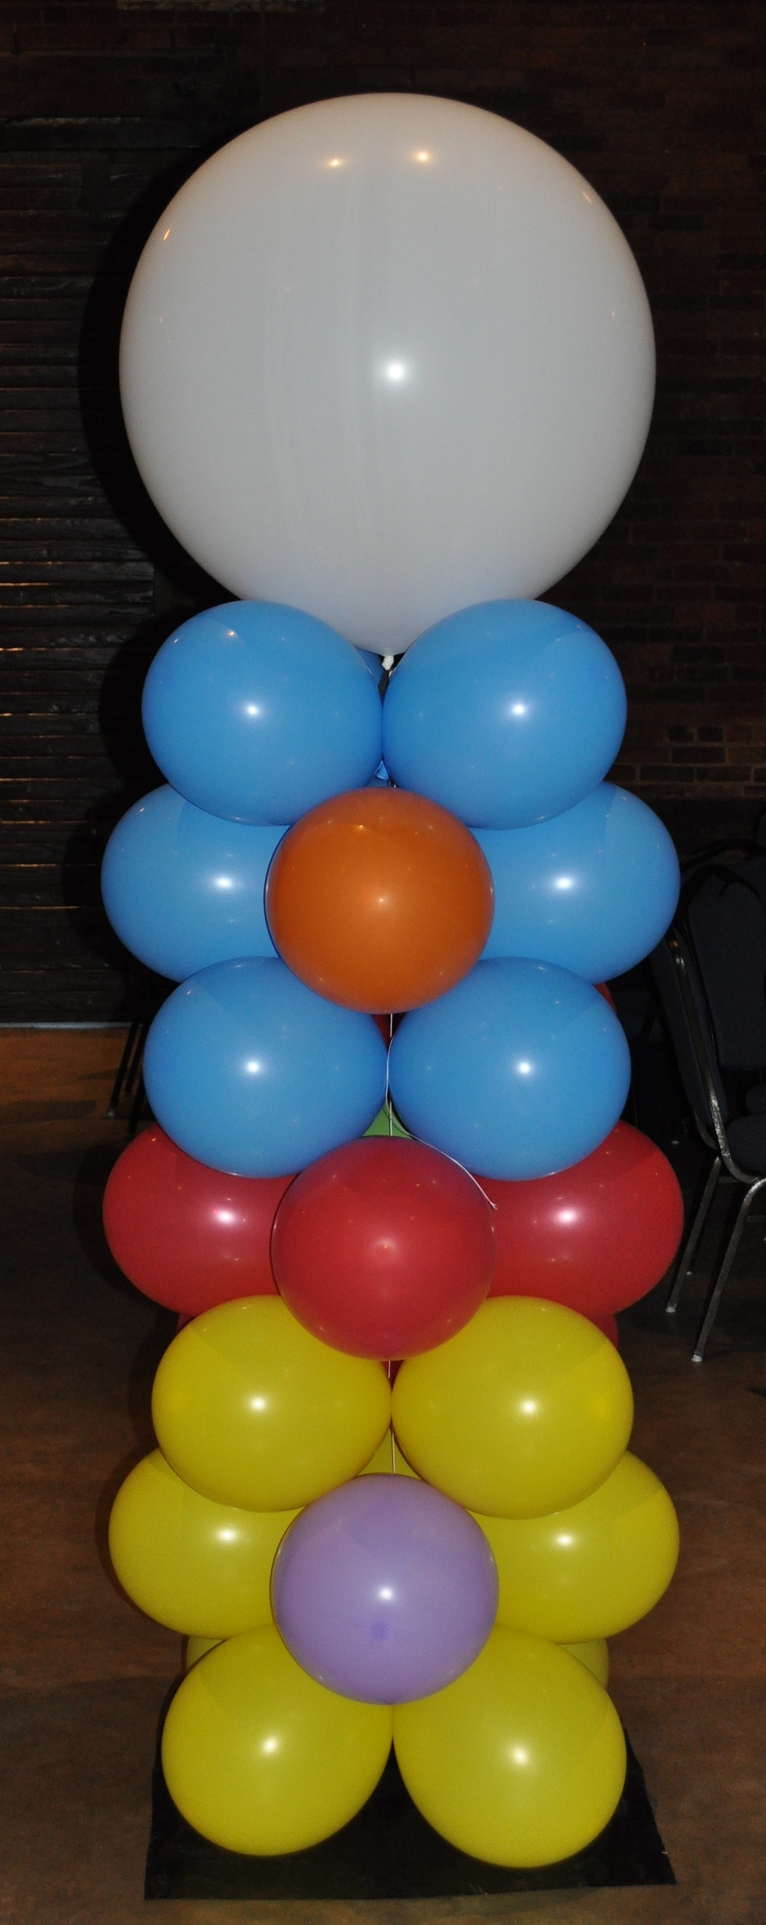 Circus-themed prom balloon column